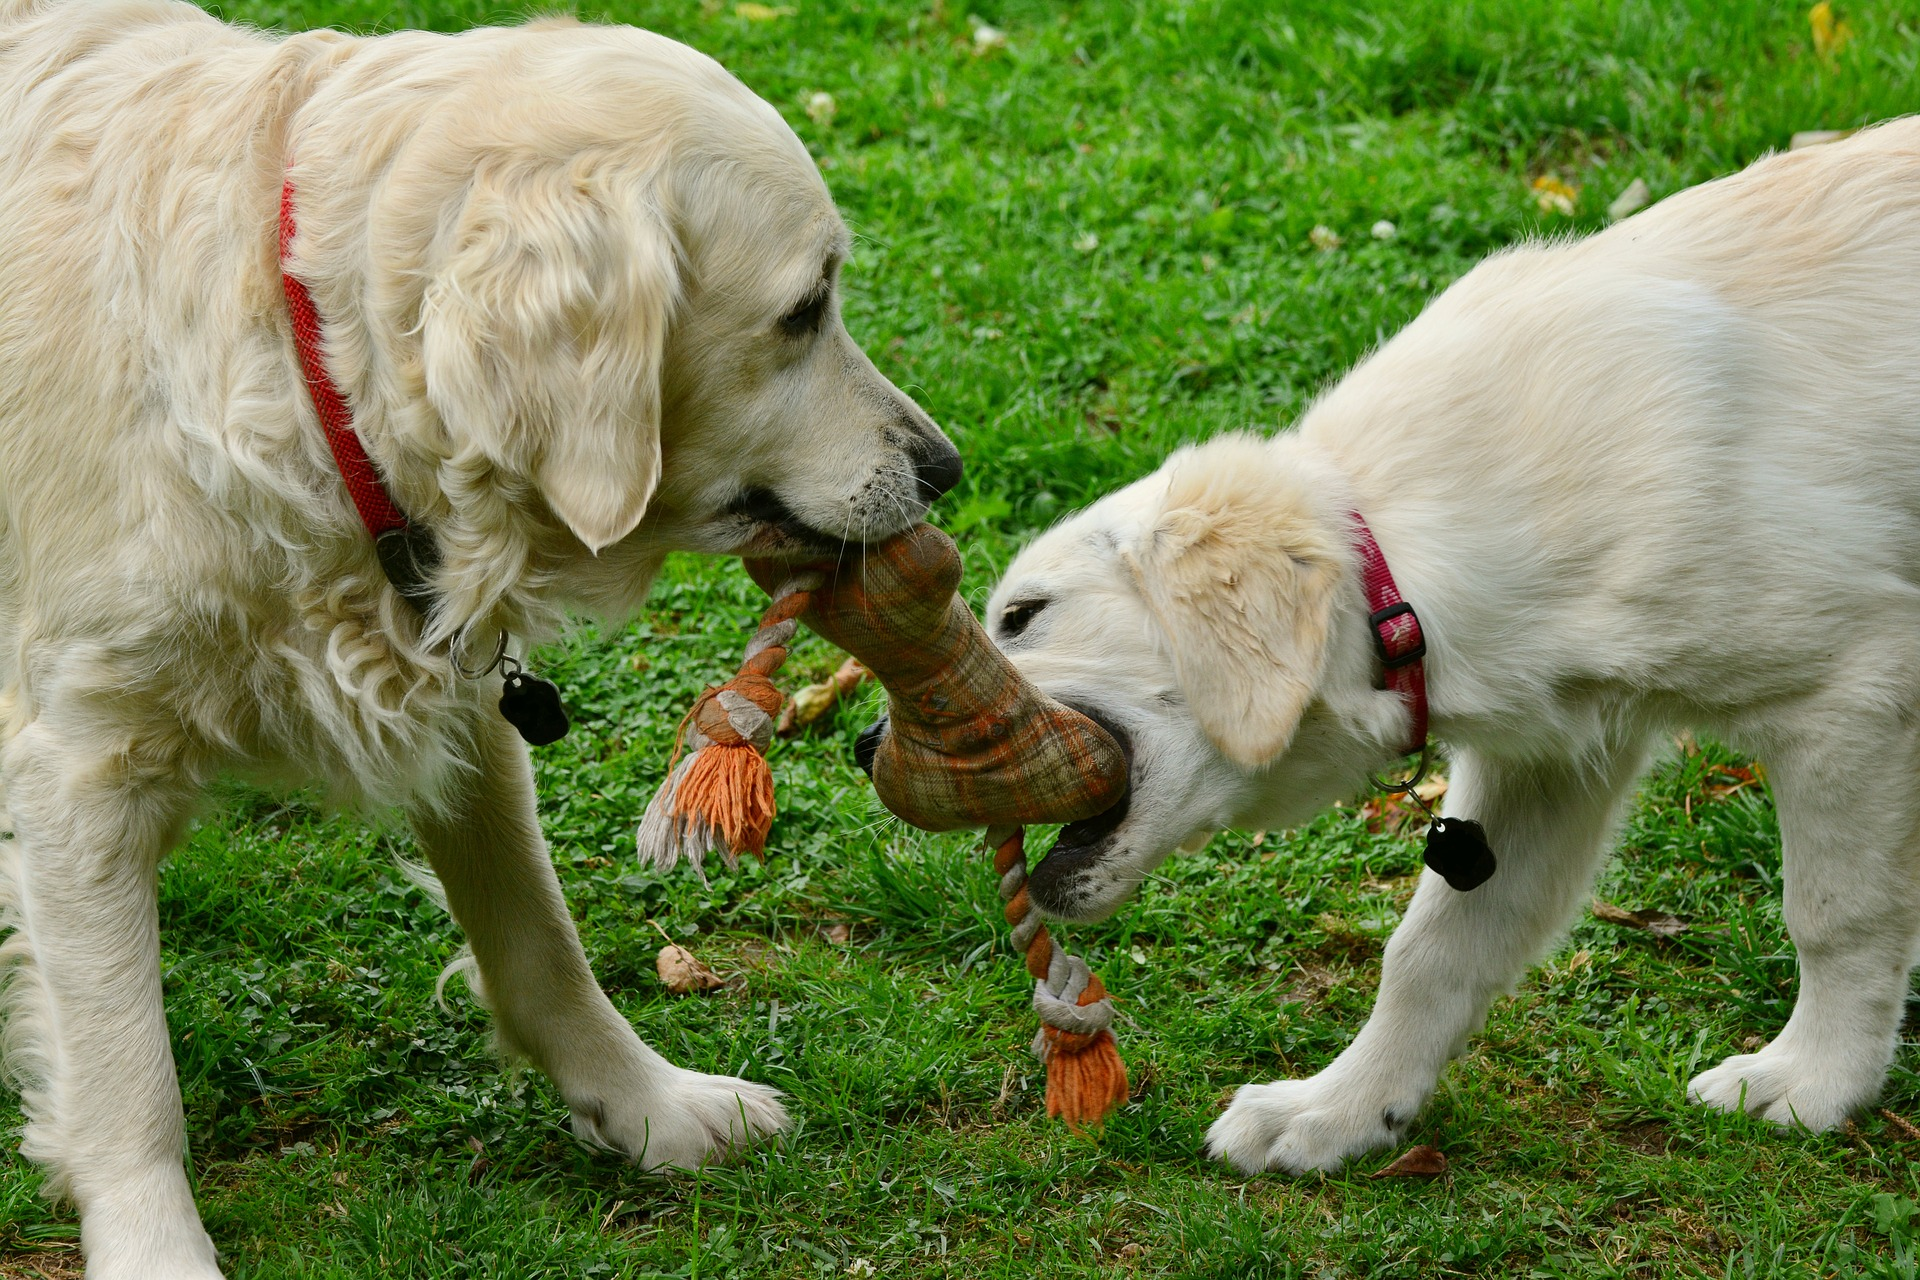 Even toys can be a route to spread distemper in dogs